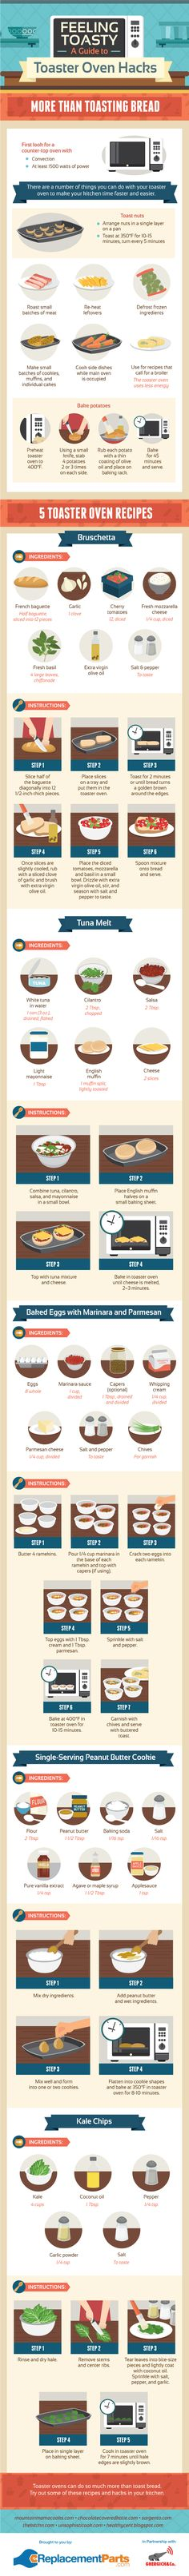 Check Out This Handy Guide For Easy Toaster Recipes [Infographic]